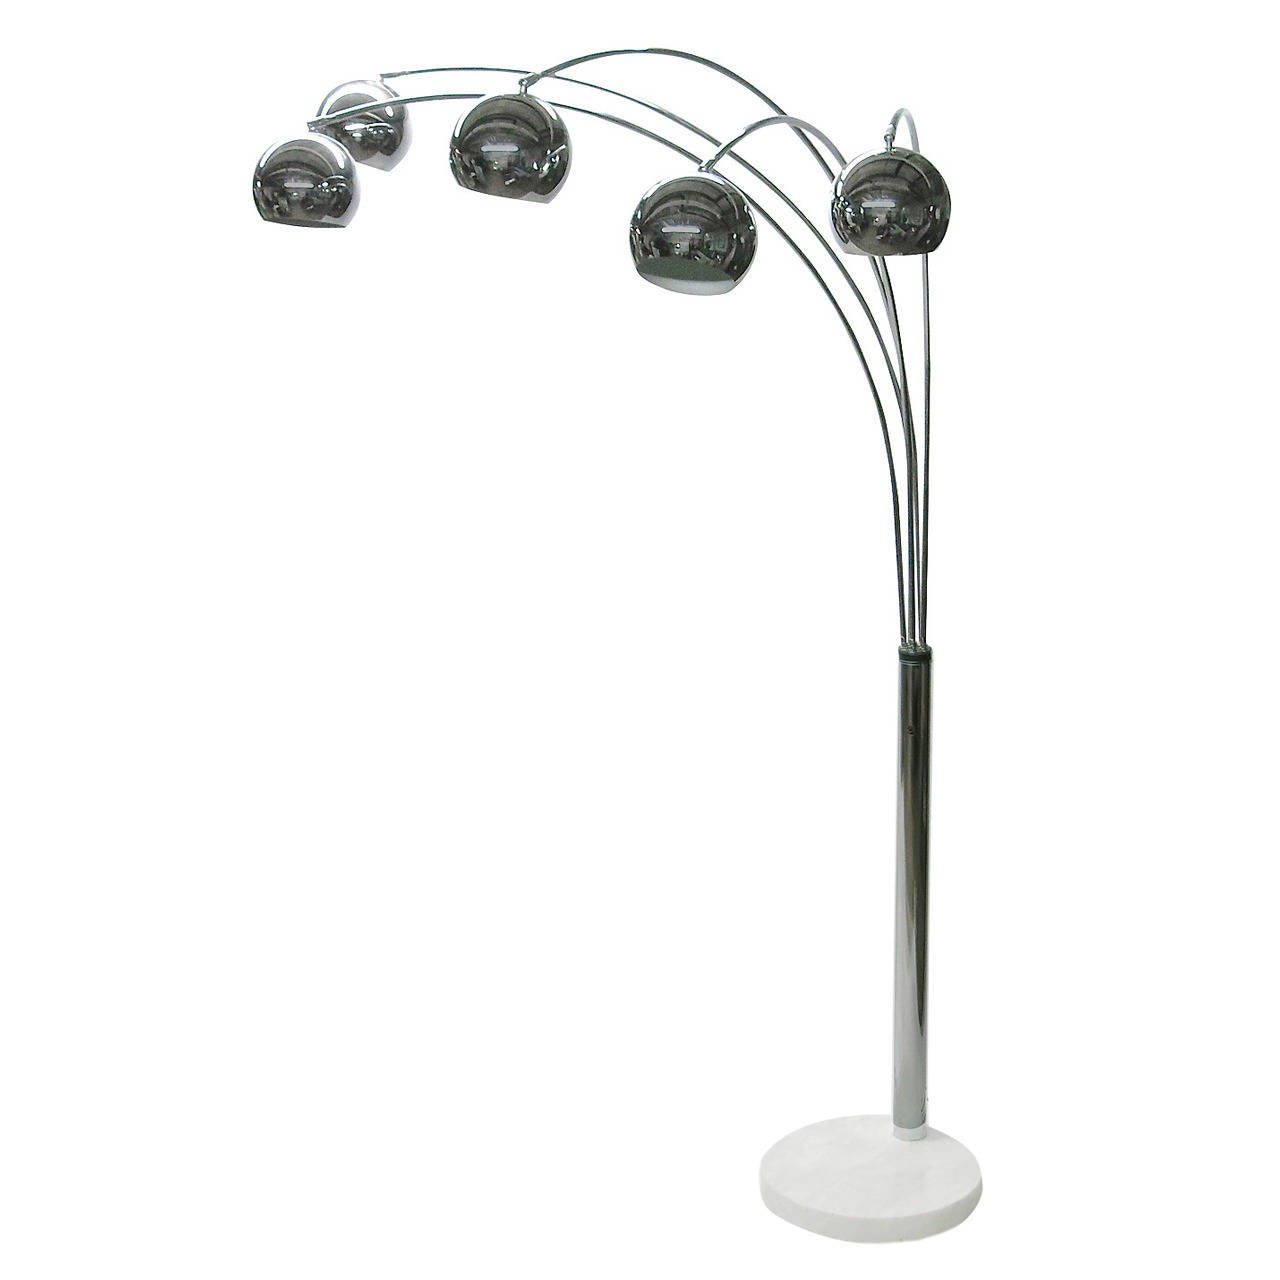 3 Arm Arc Floor Lamp >> Five-Arm Arc Floor Lamp, circa 1970, Italy at 1stdibs